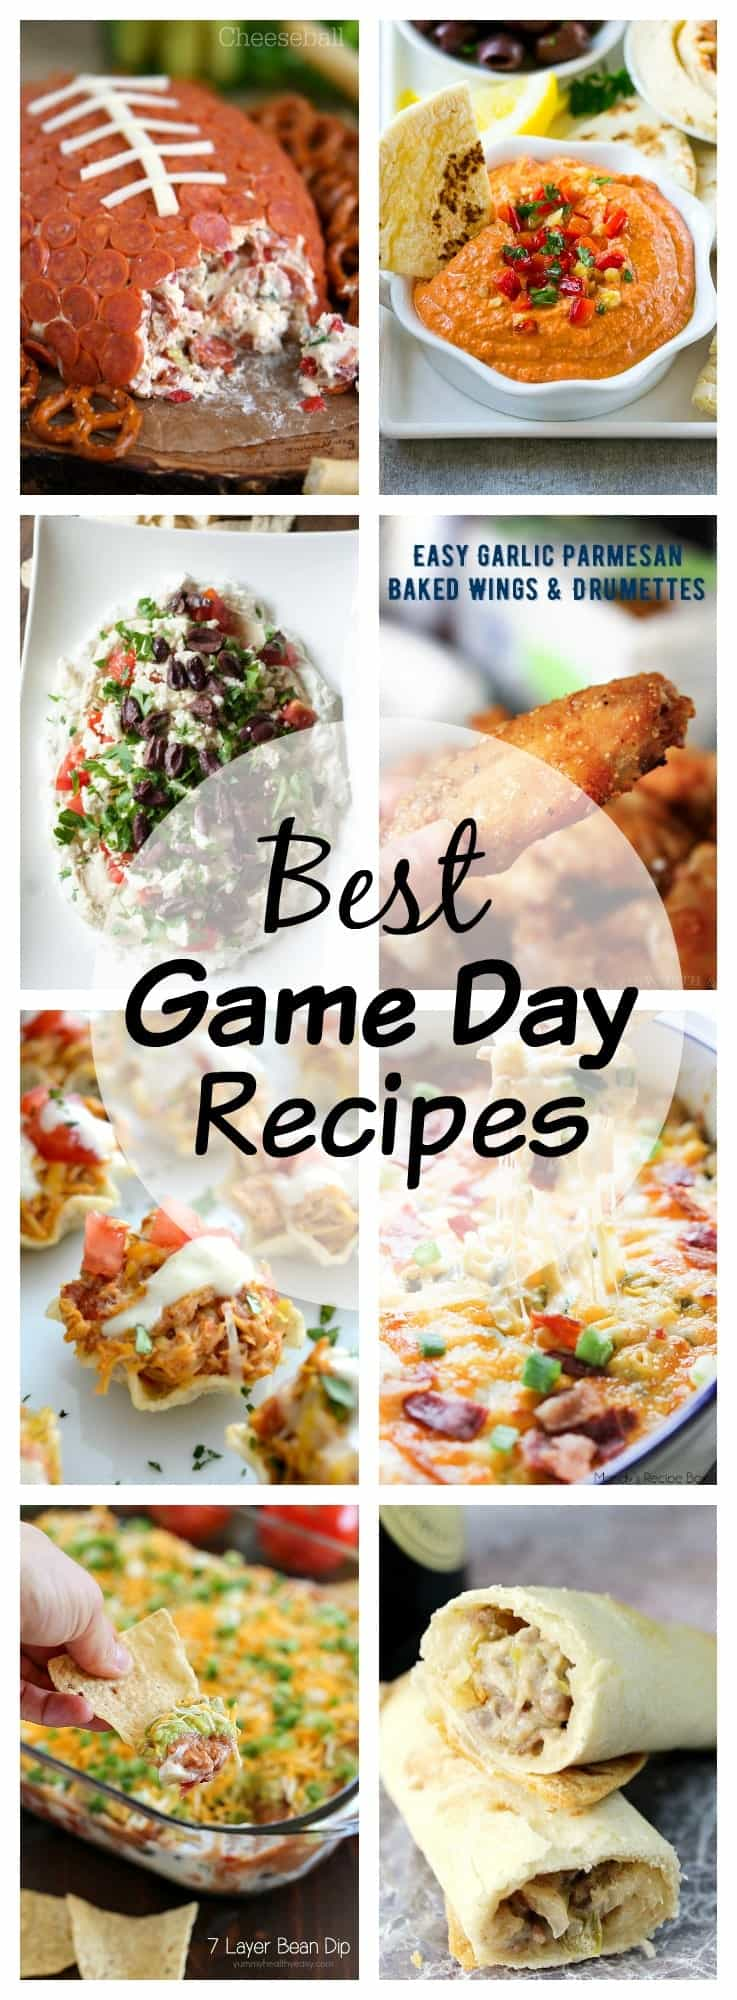 Don't show up empty handed on game day!  This is a collection of the best game day recipes!